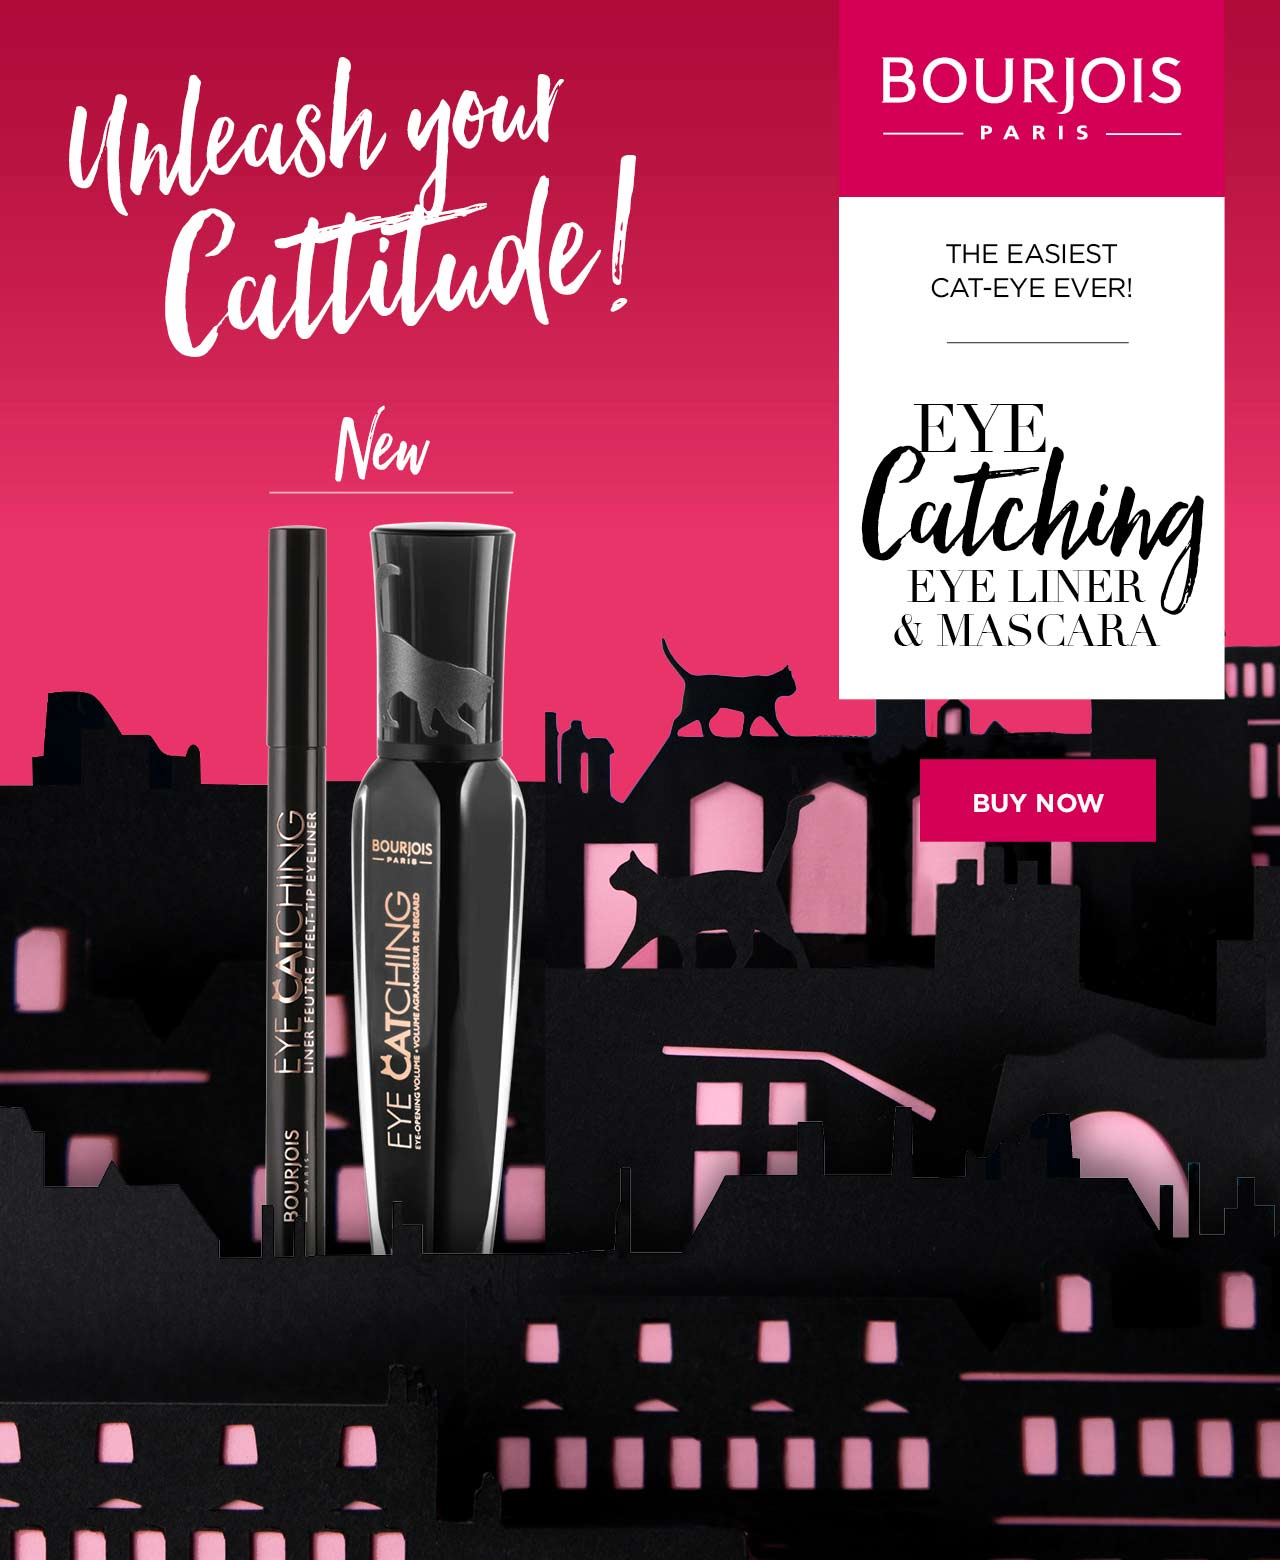 Bourjois - Eye Catching ascara